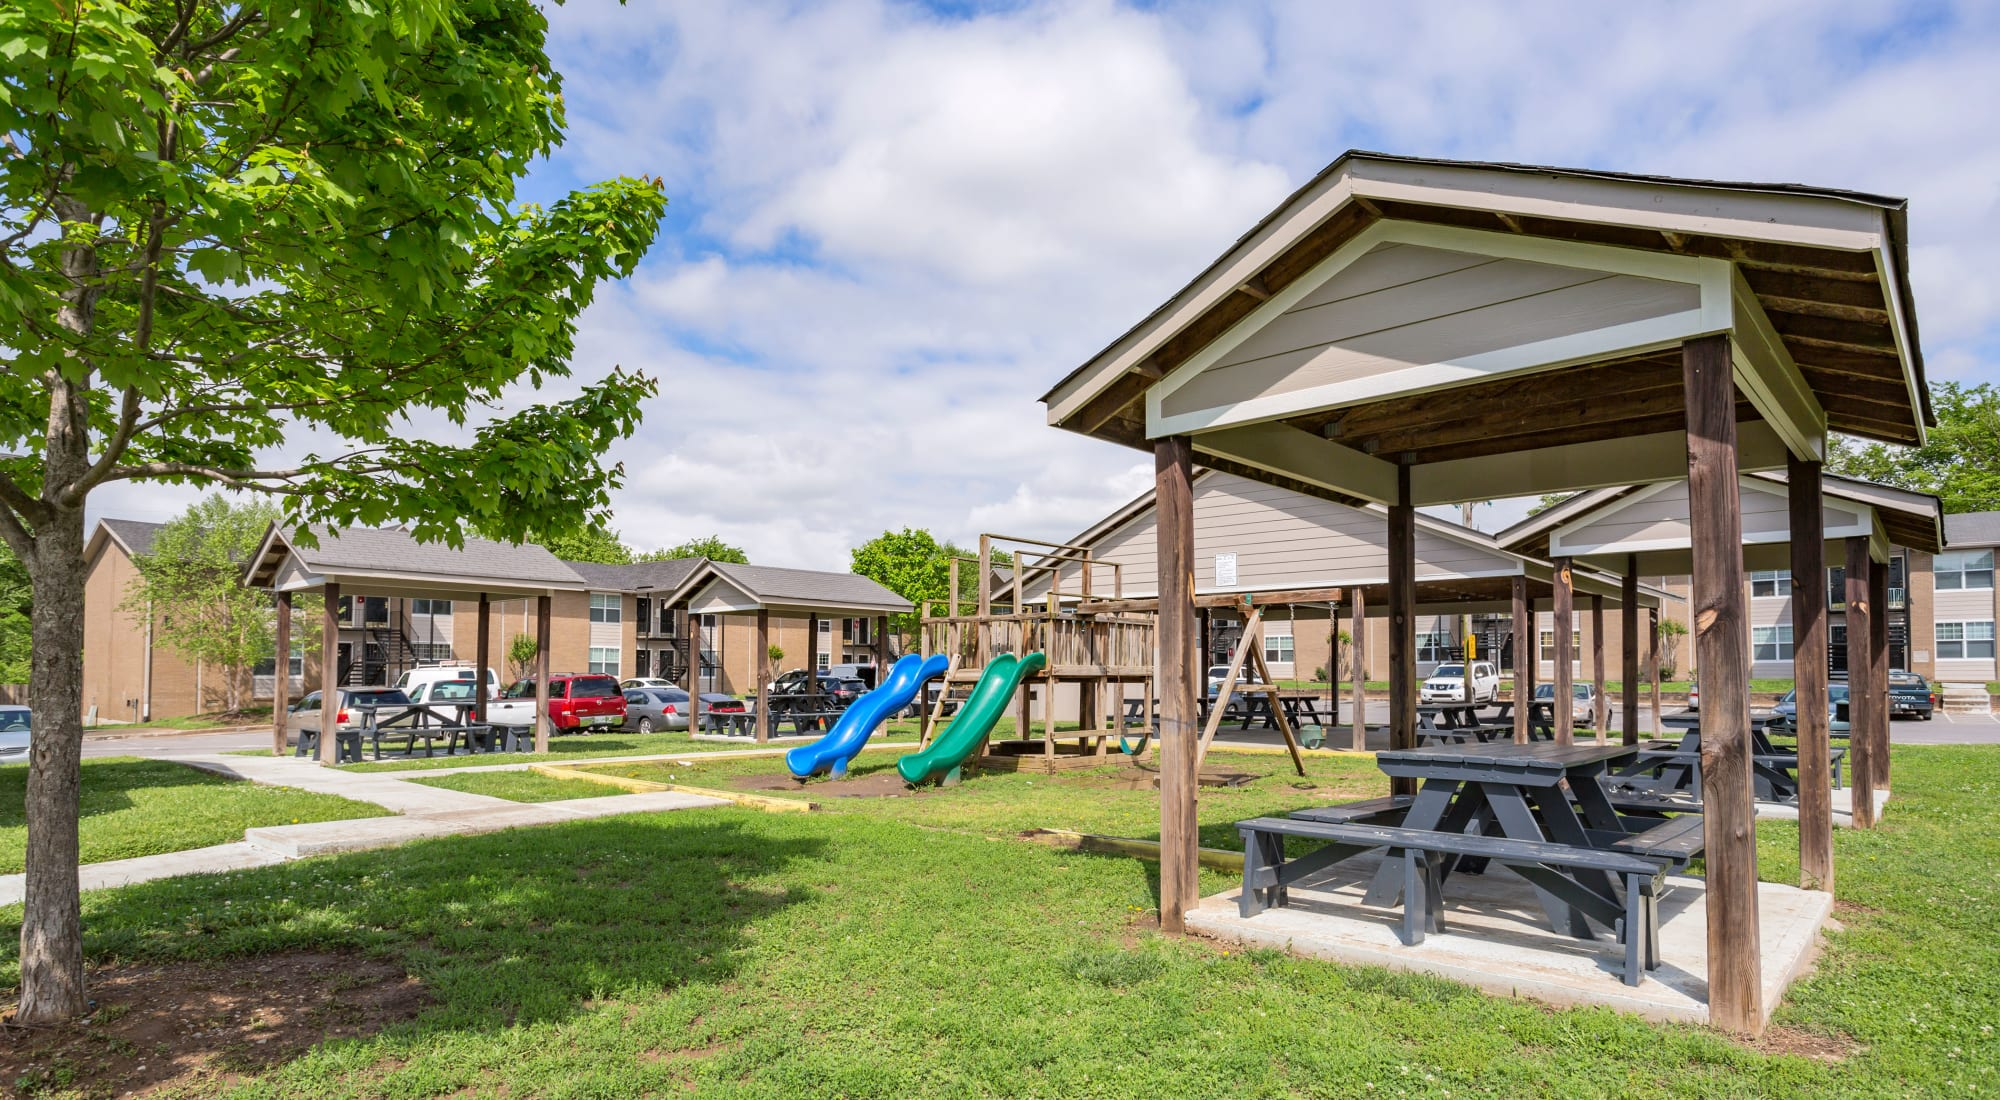 Picnic and Play Area at Maple Creek in Nashville, TN